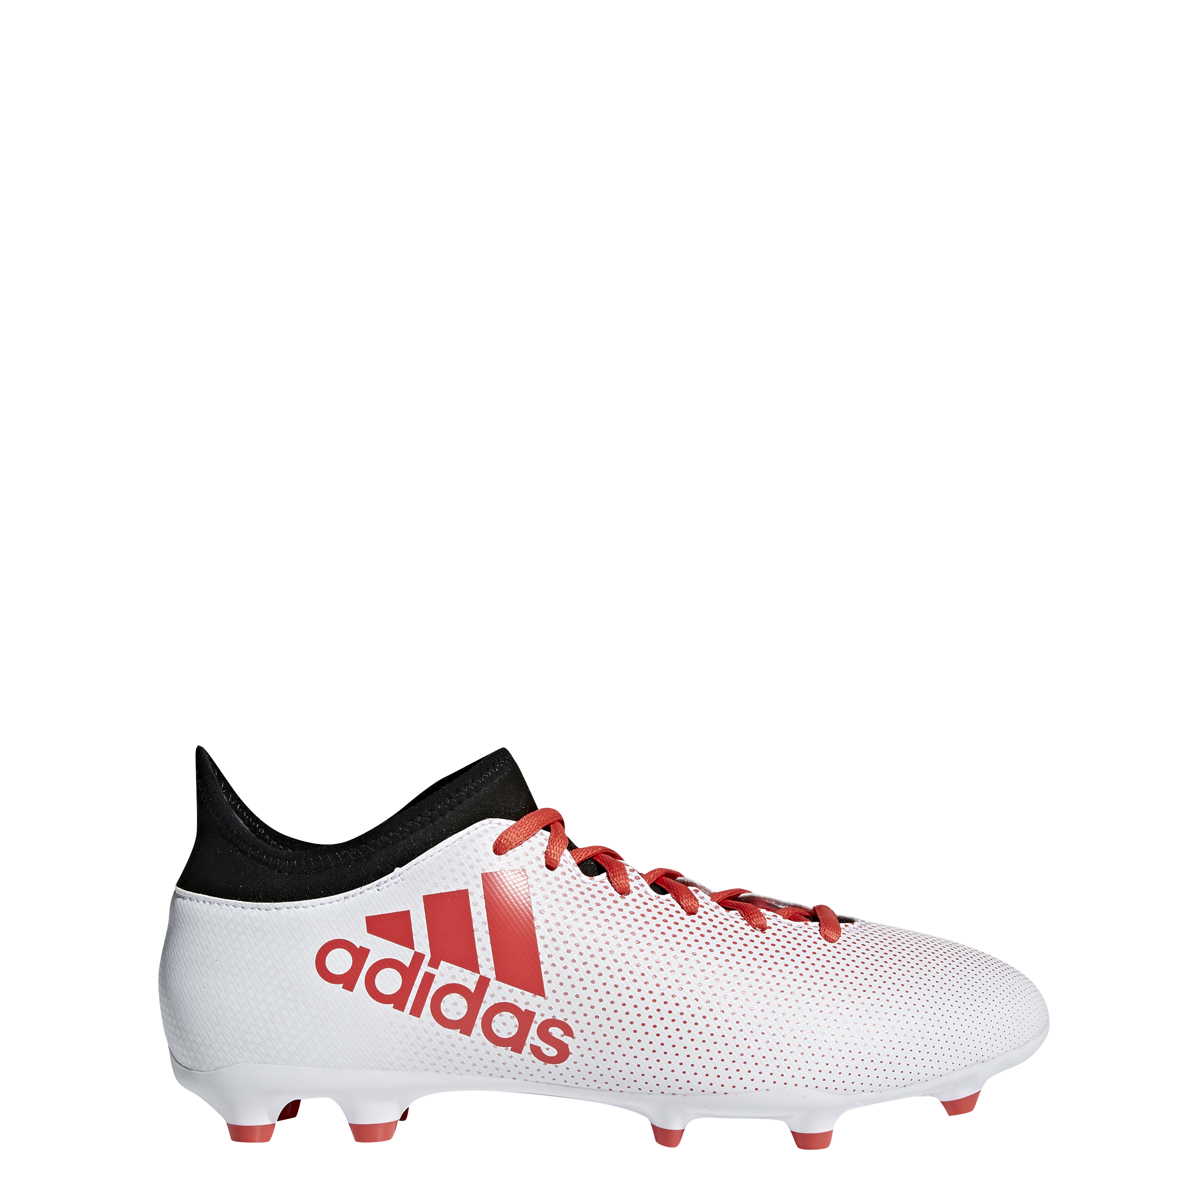 best authentic 7fd14 d9ffd Details about Men s Adidas X 17.3 FG Soccer Cleat White Red Black